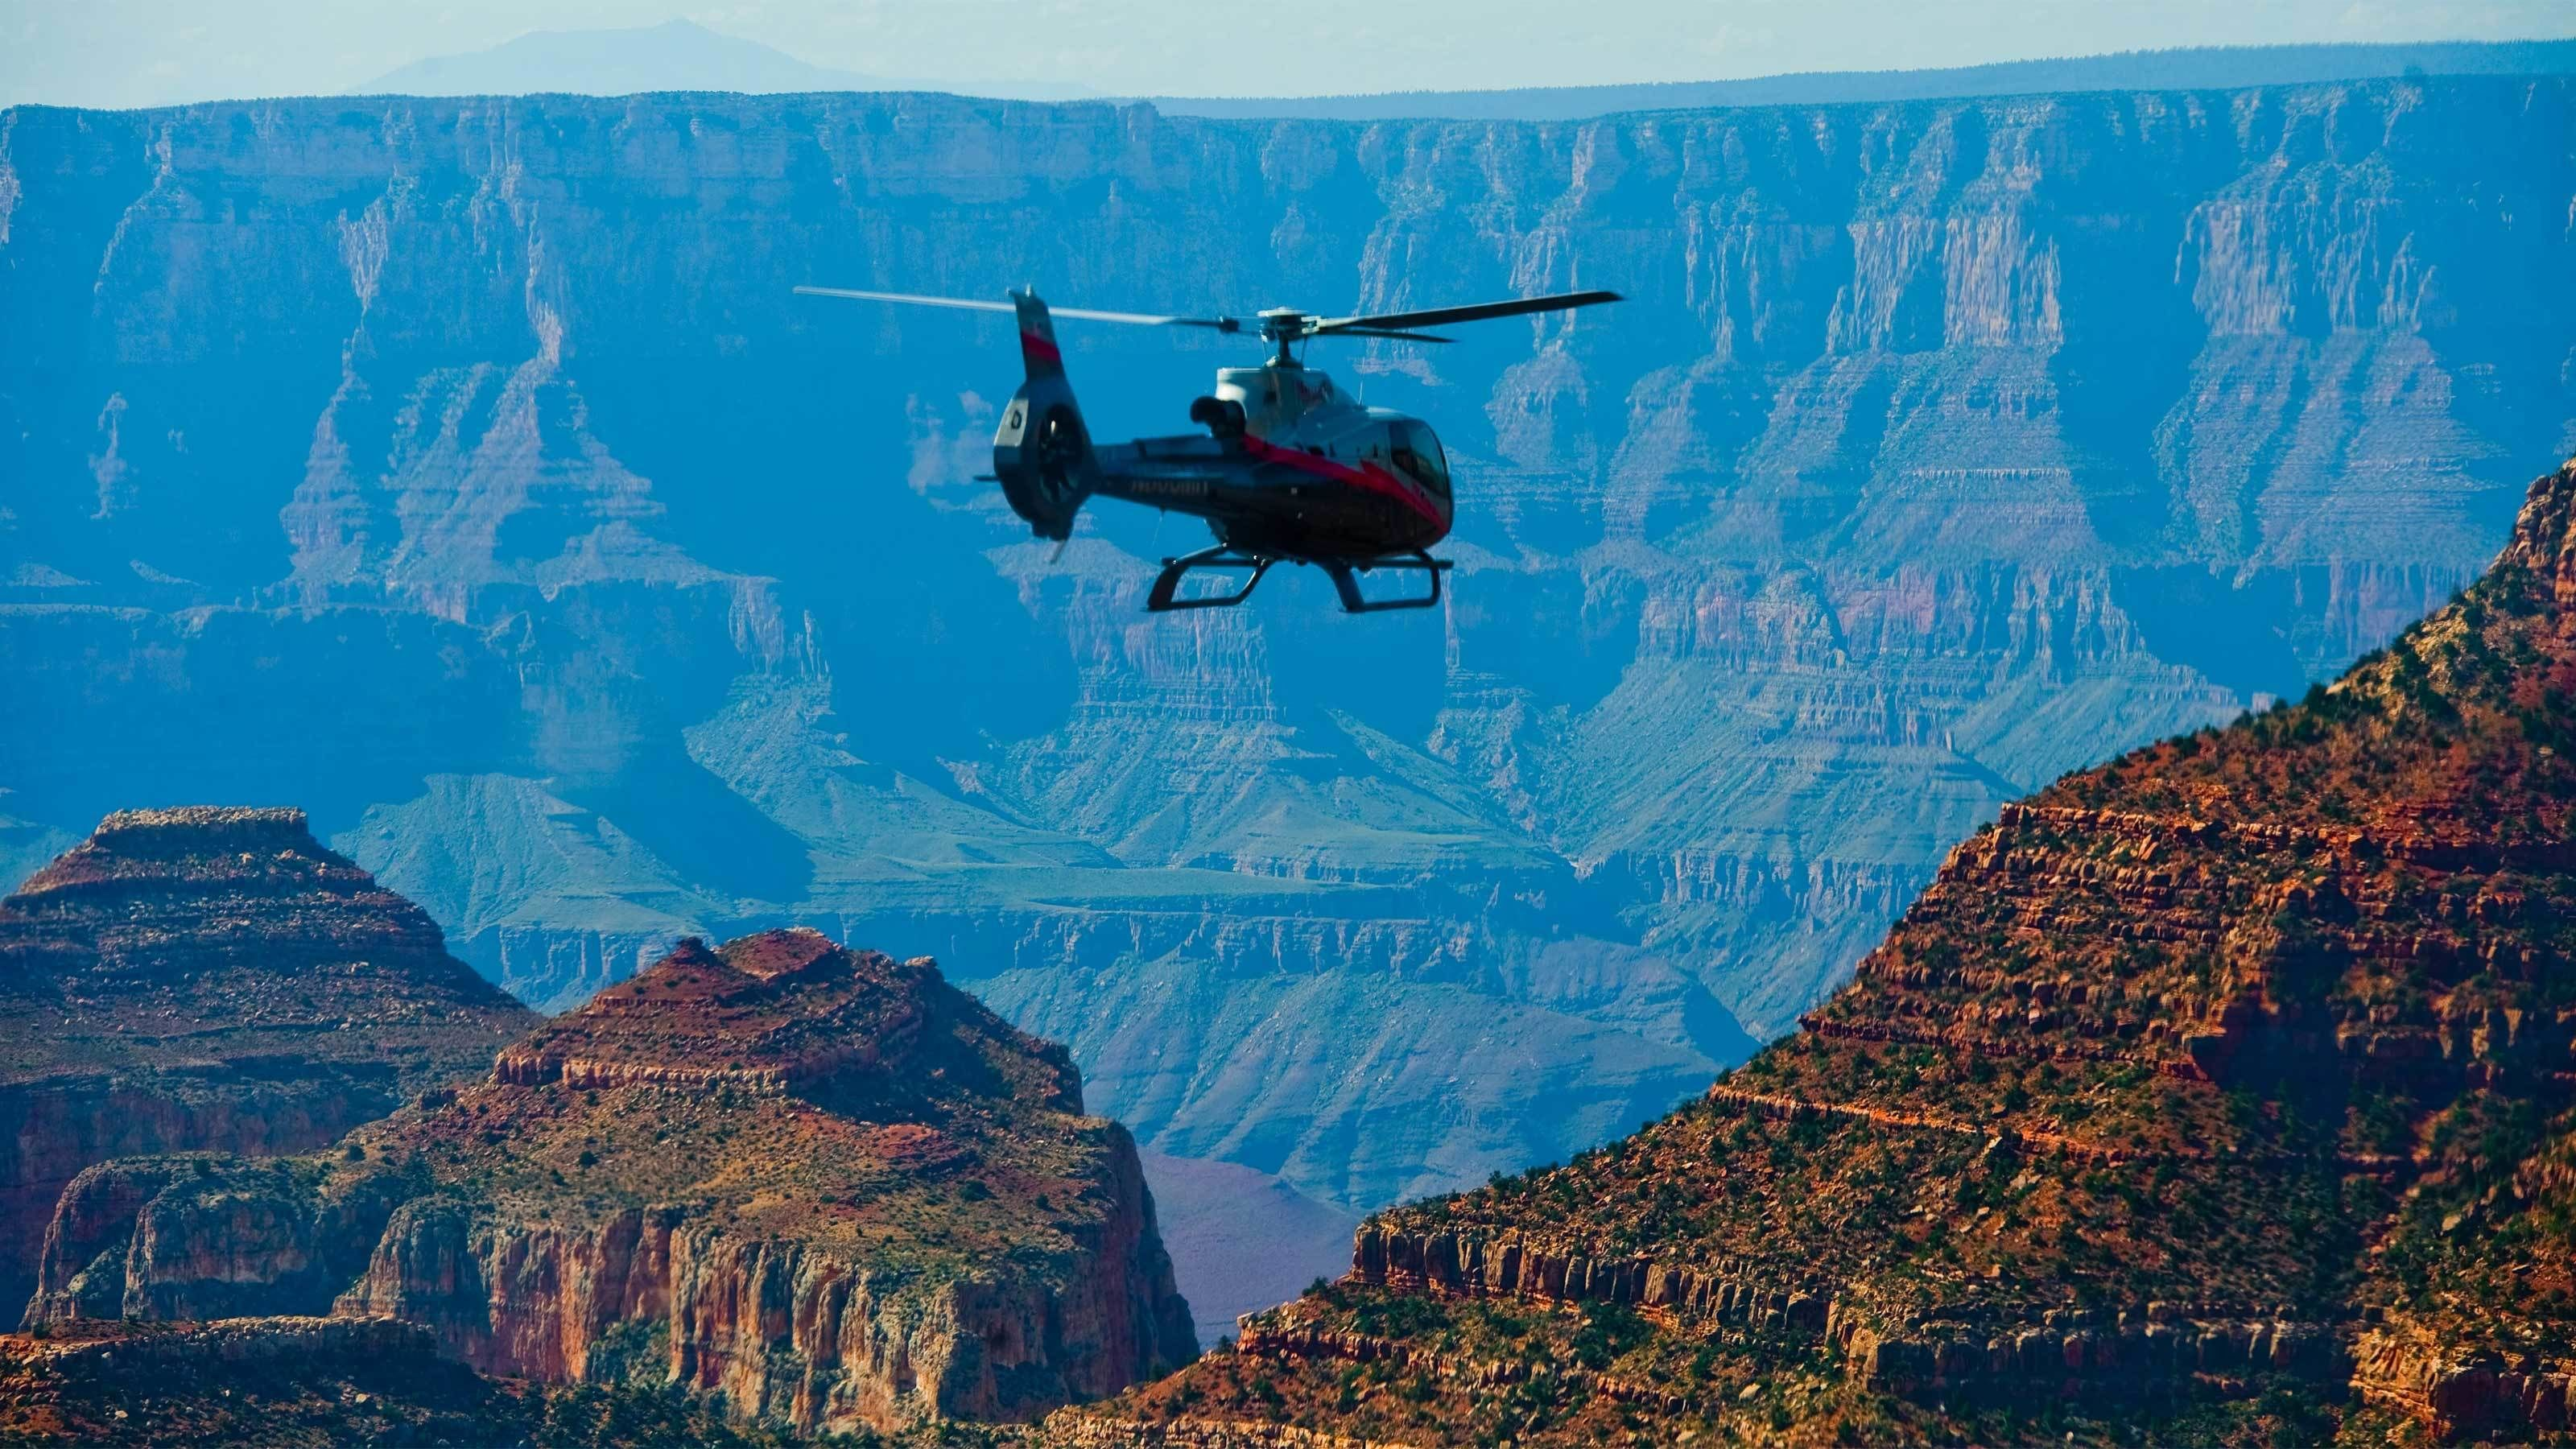 Helicopter flying over the Grand Canyon during the day